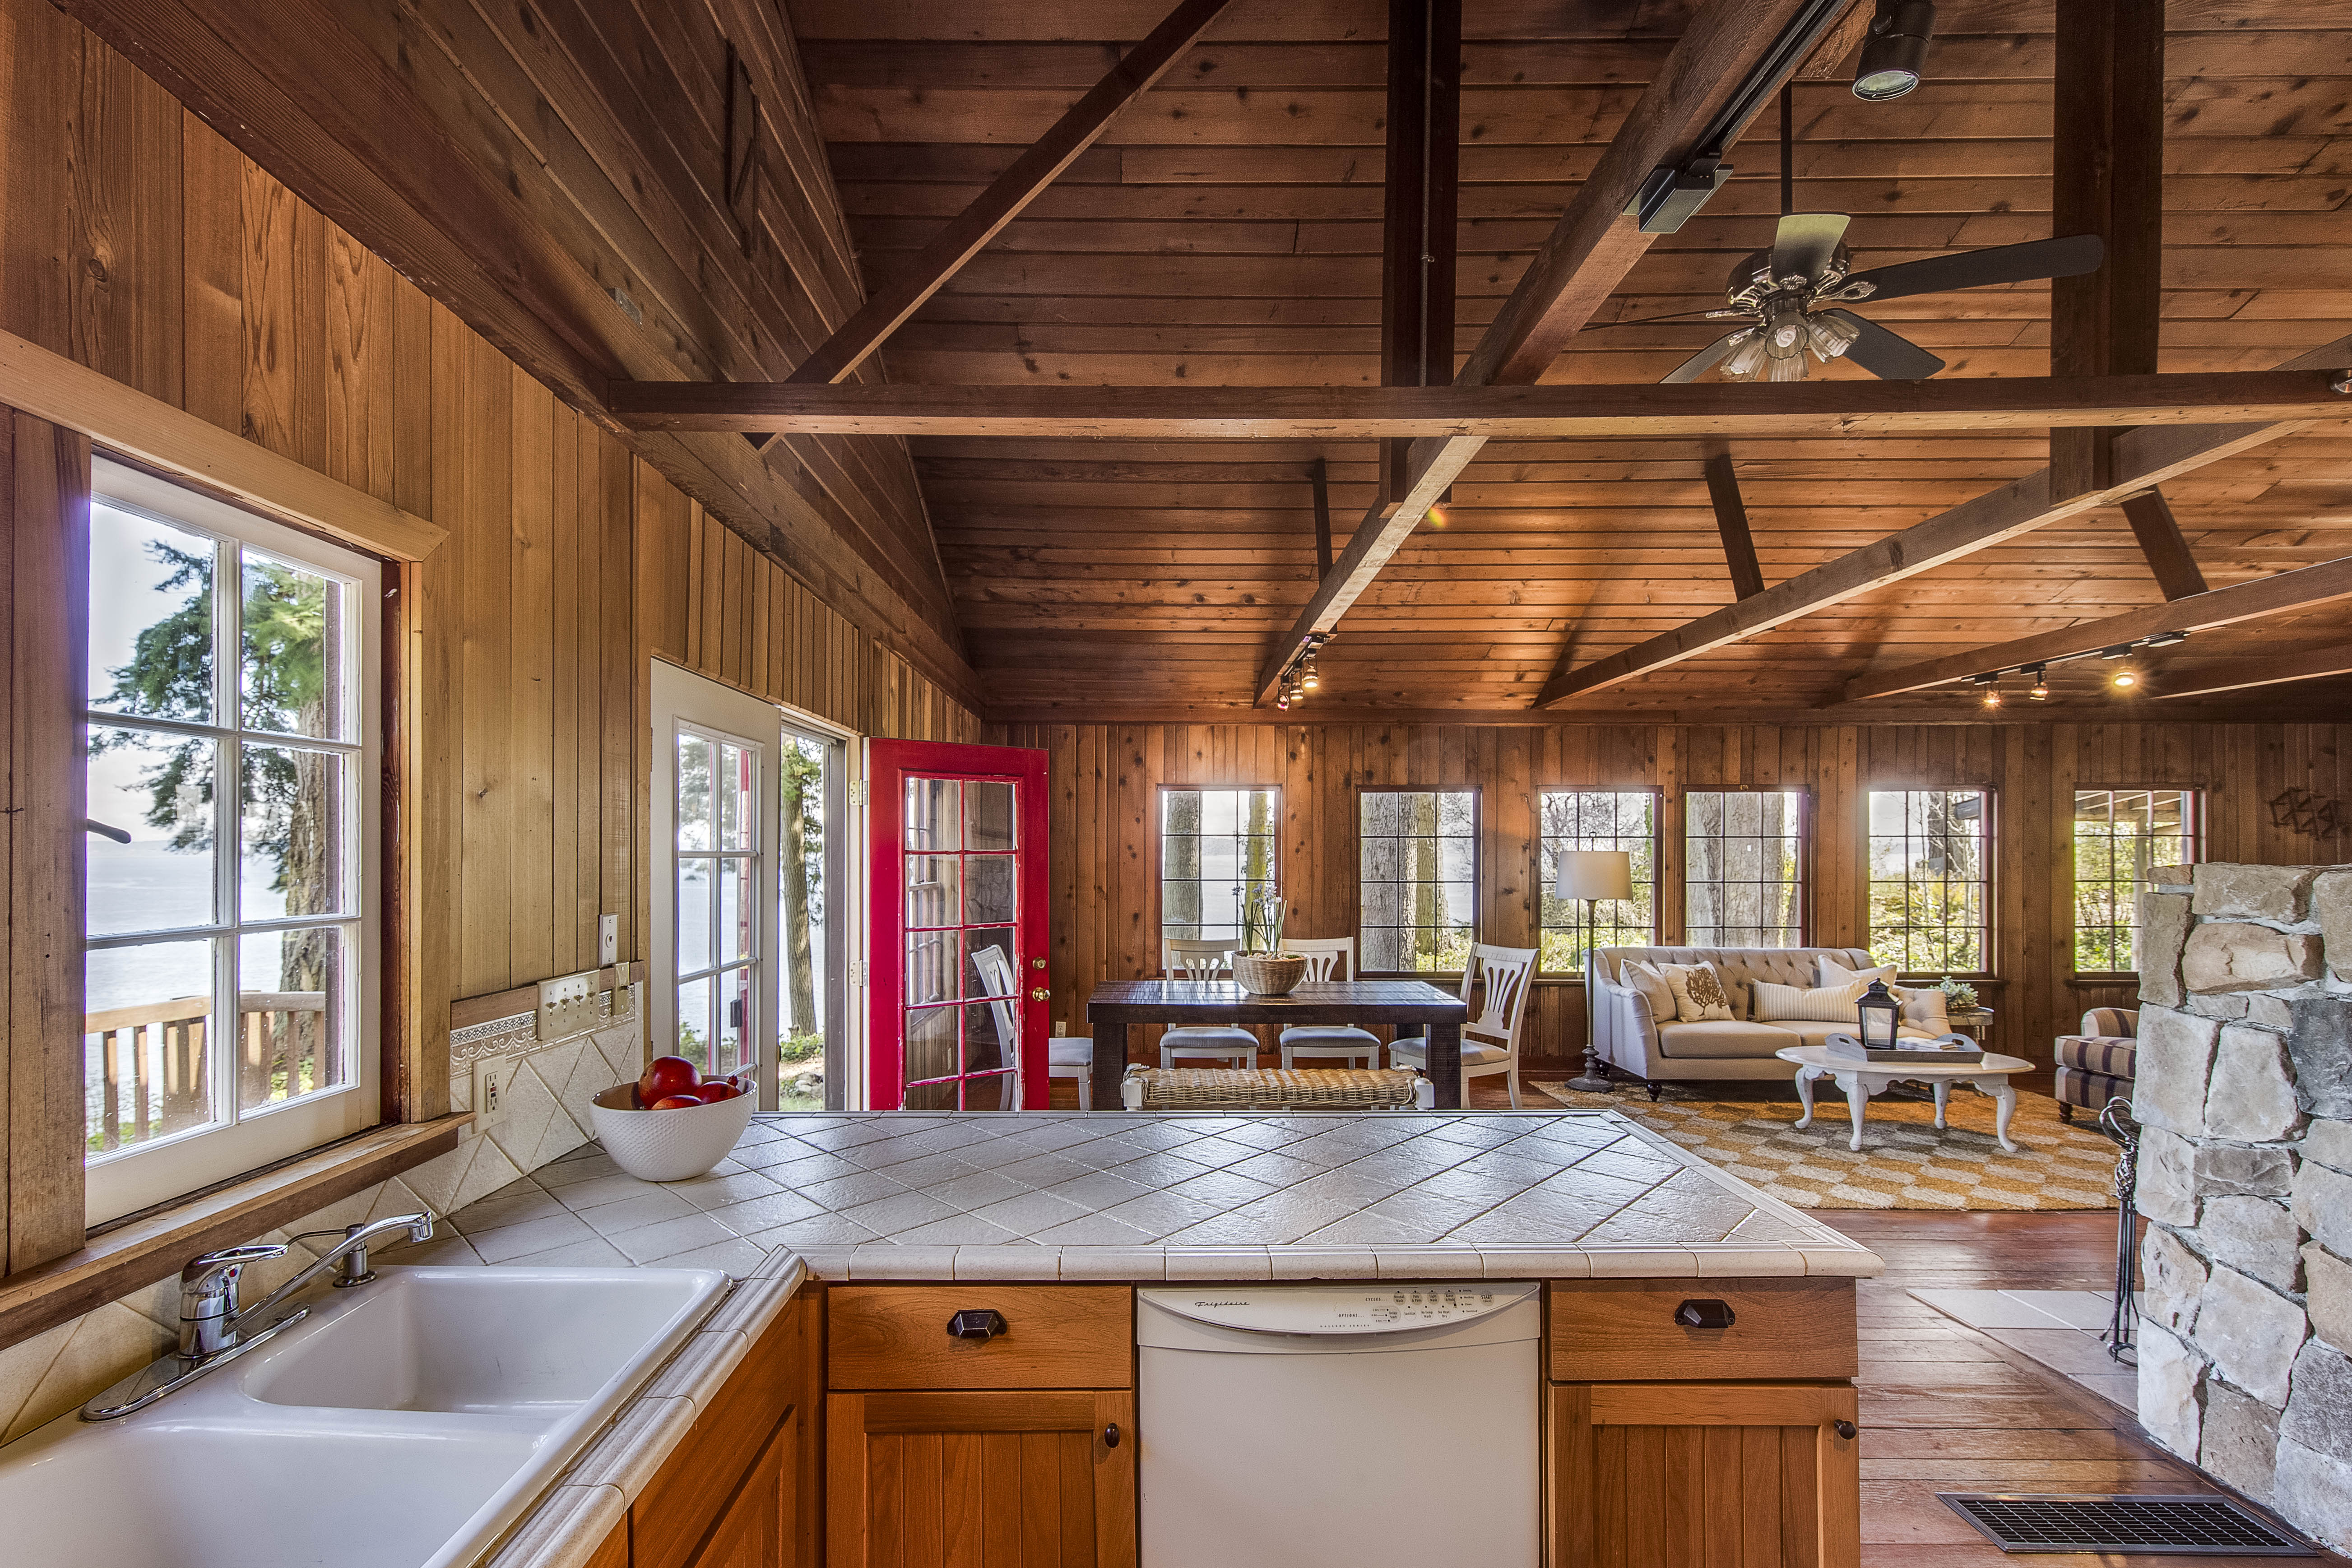 Refined and rustic find a balance on Bainbridge Curbed Seattle